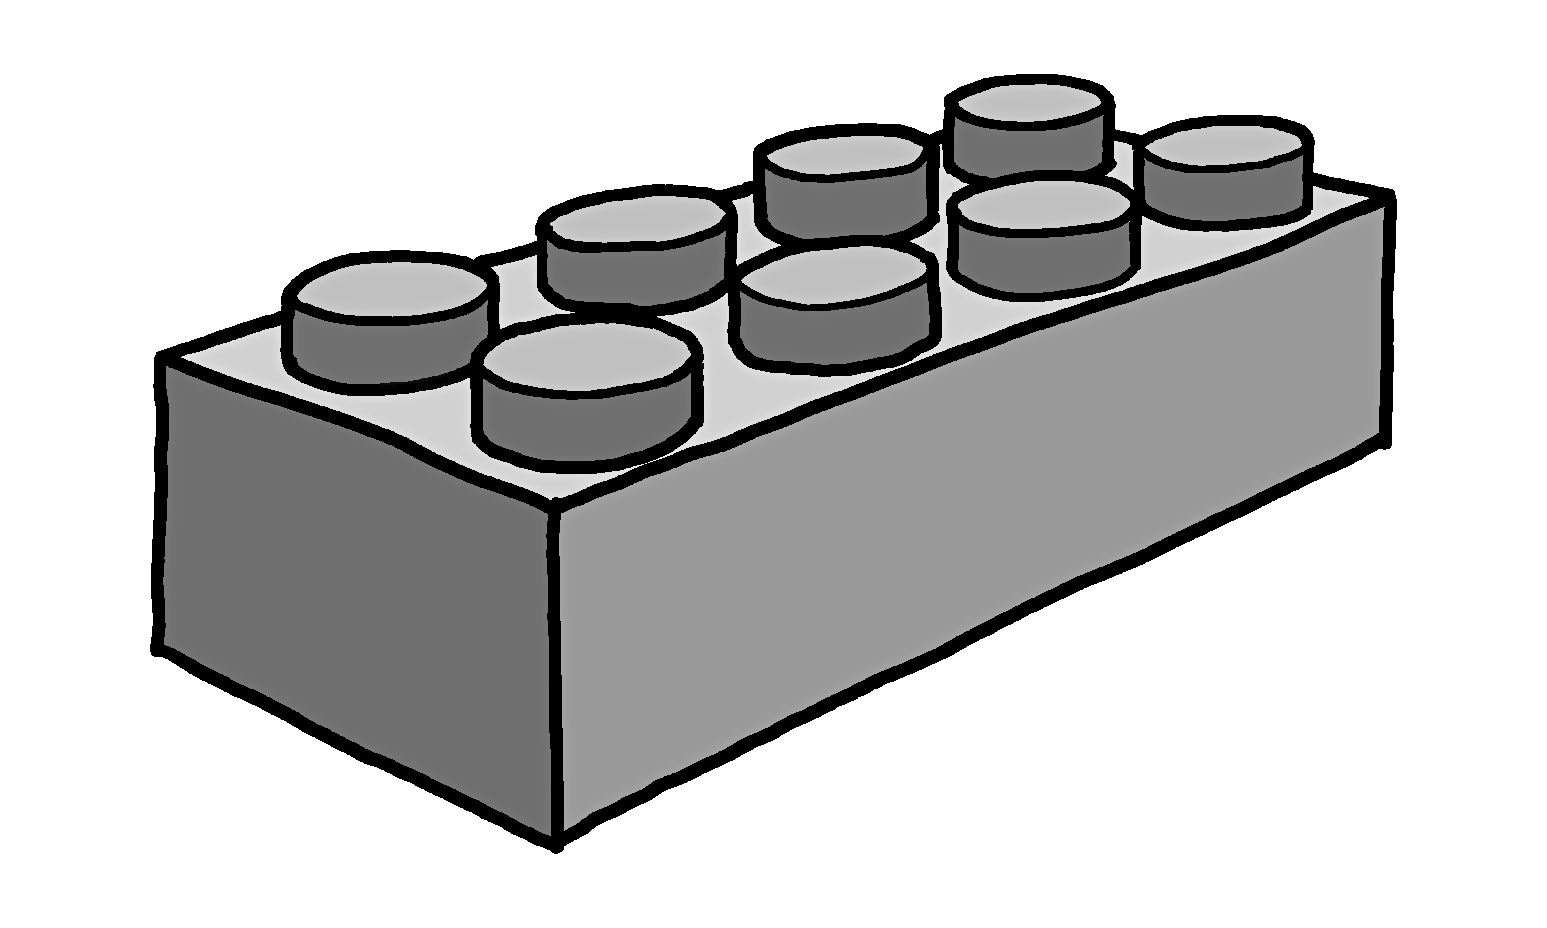 lego brick side view clipart - photo #23